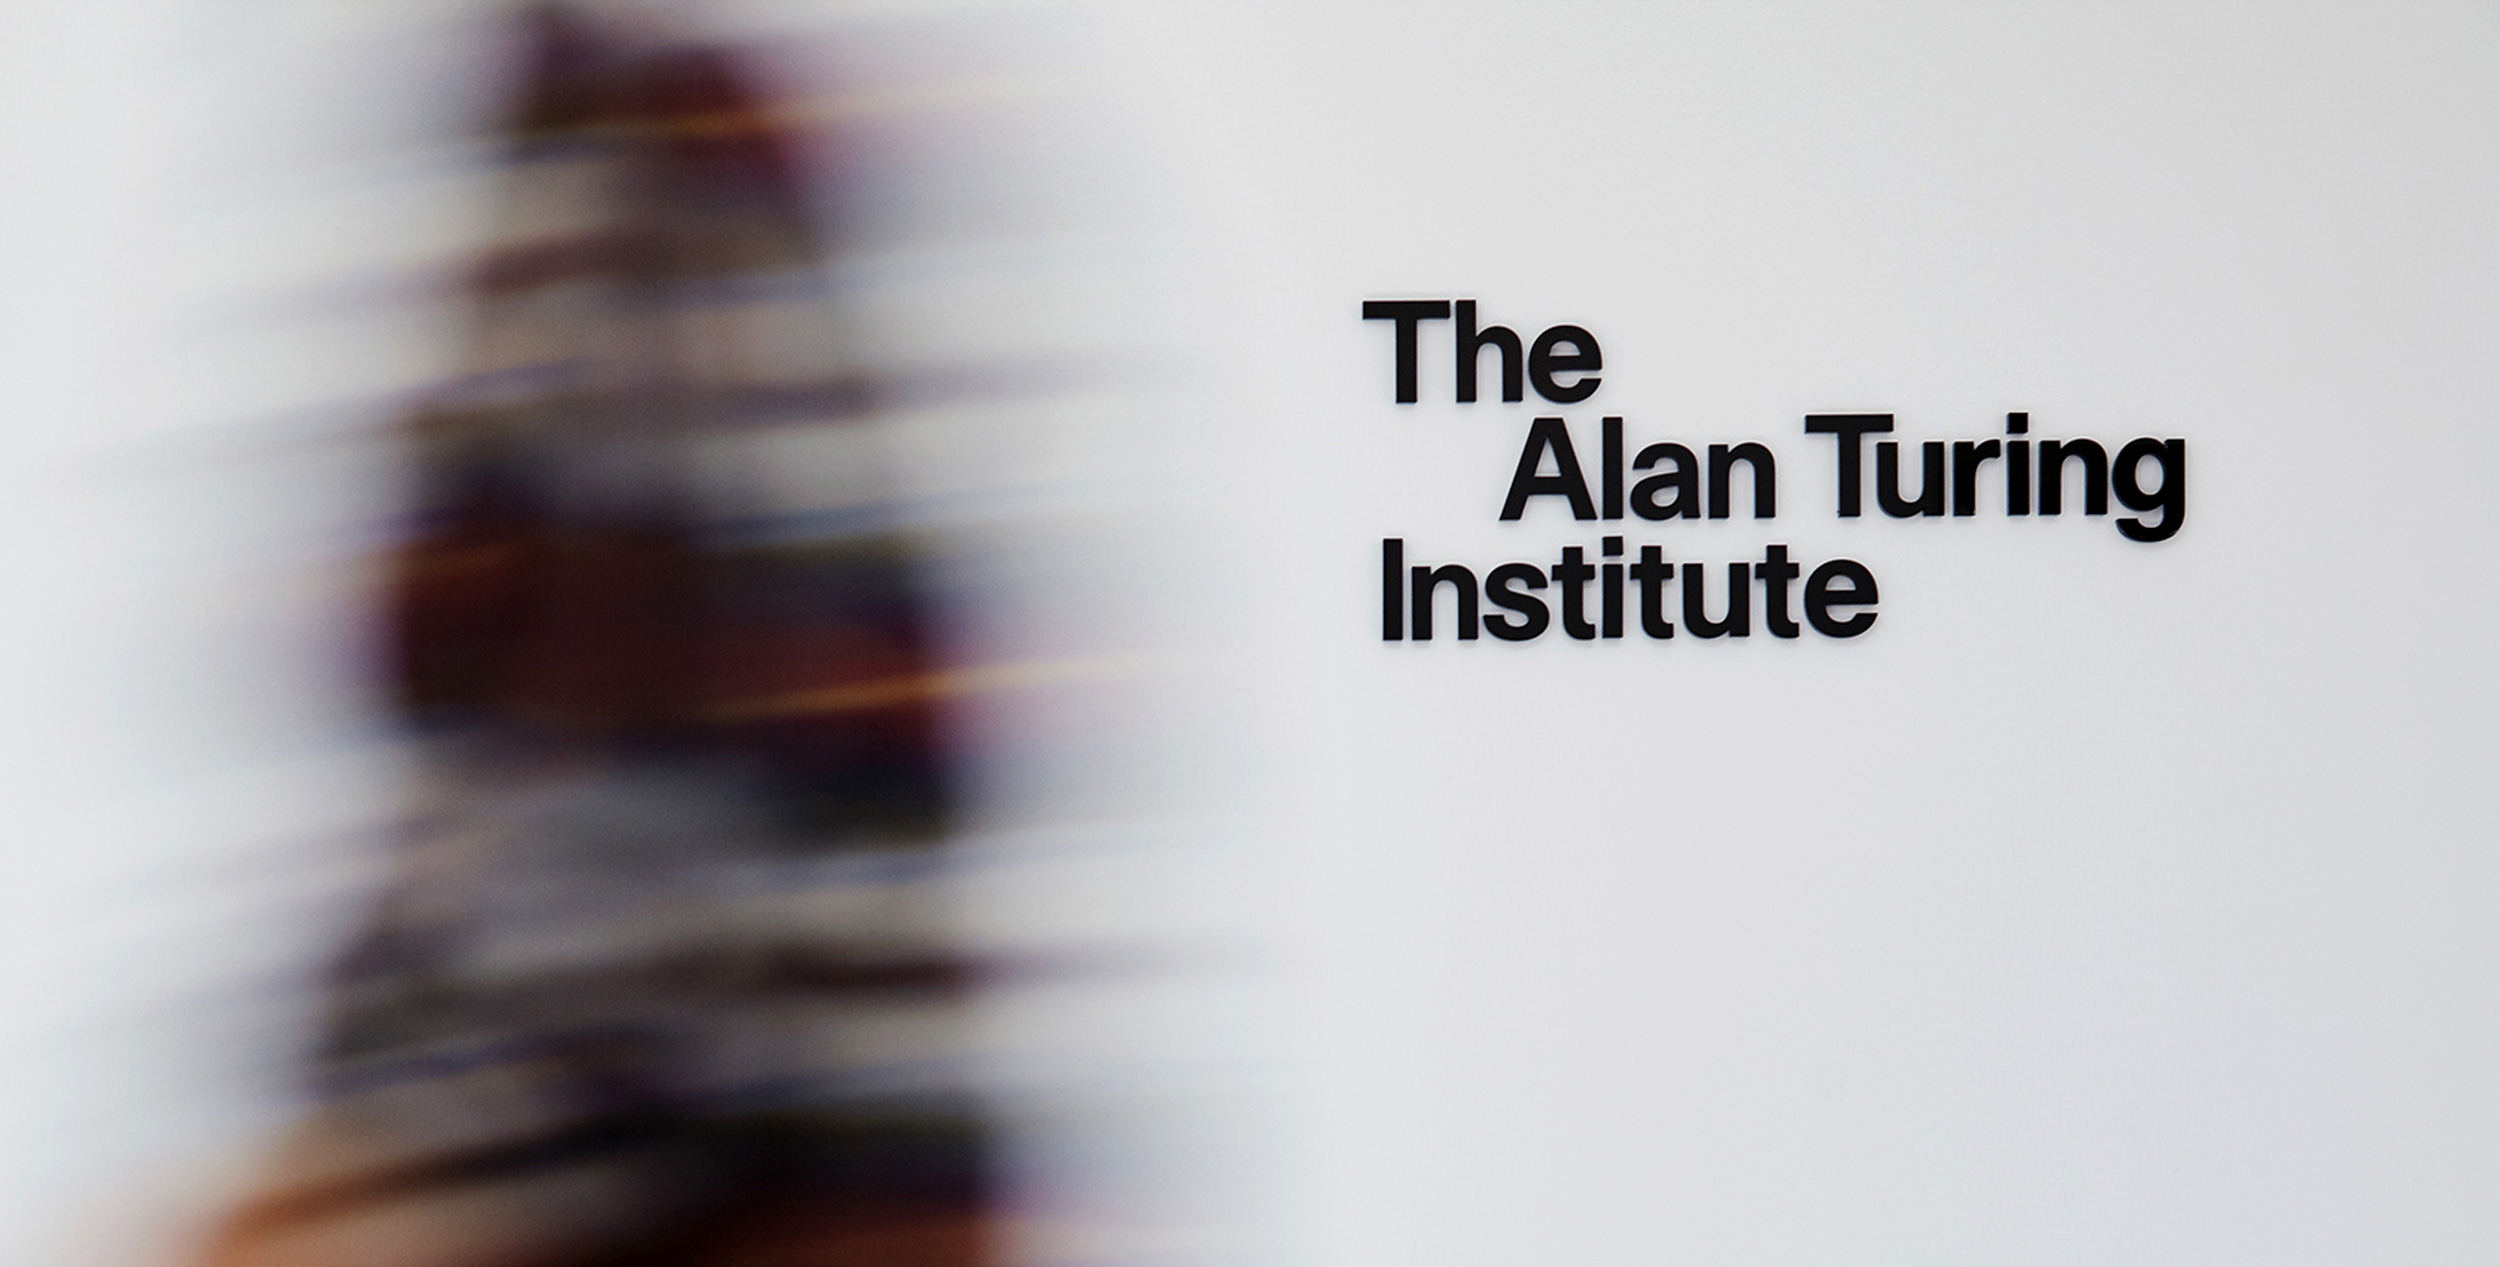 The Alan Turing Institute sees further